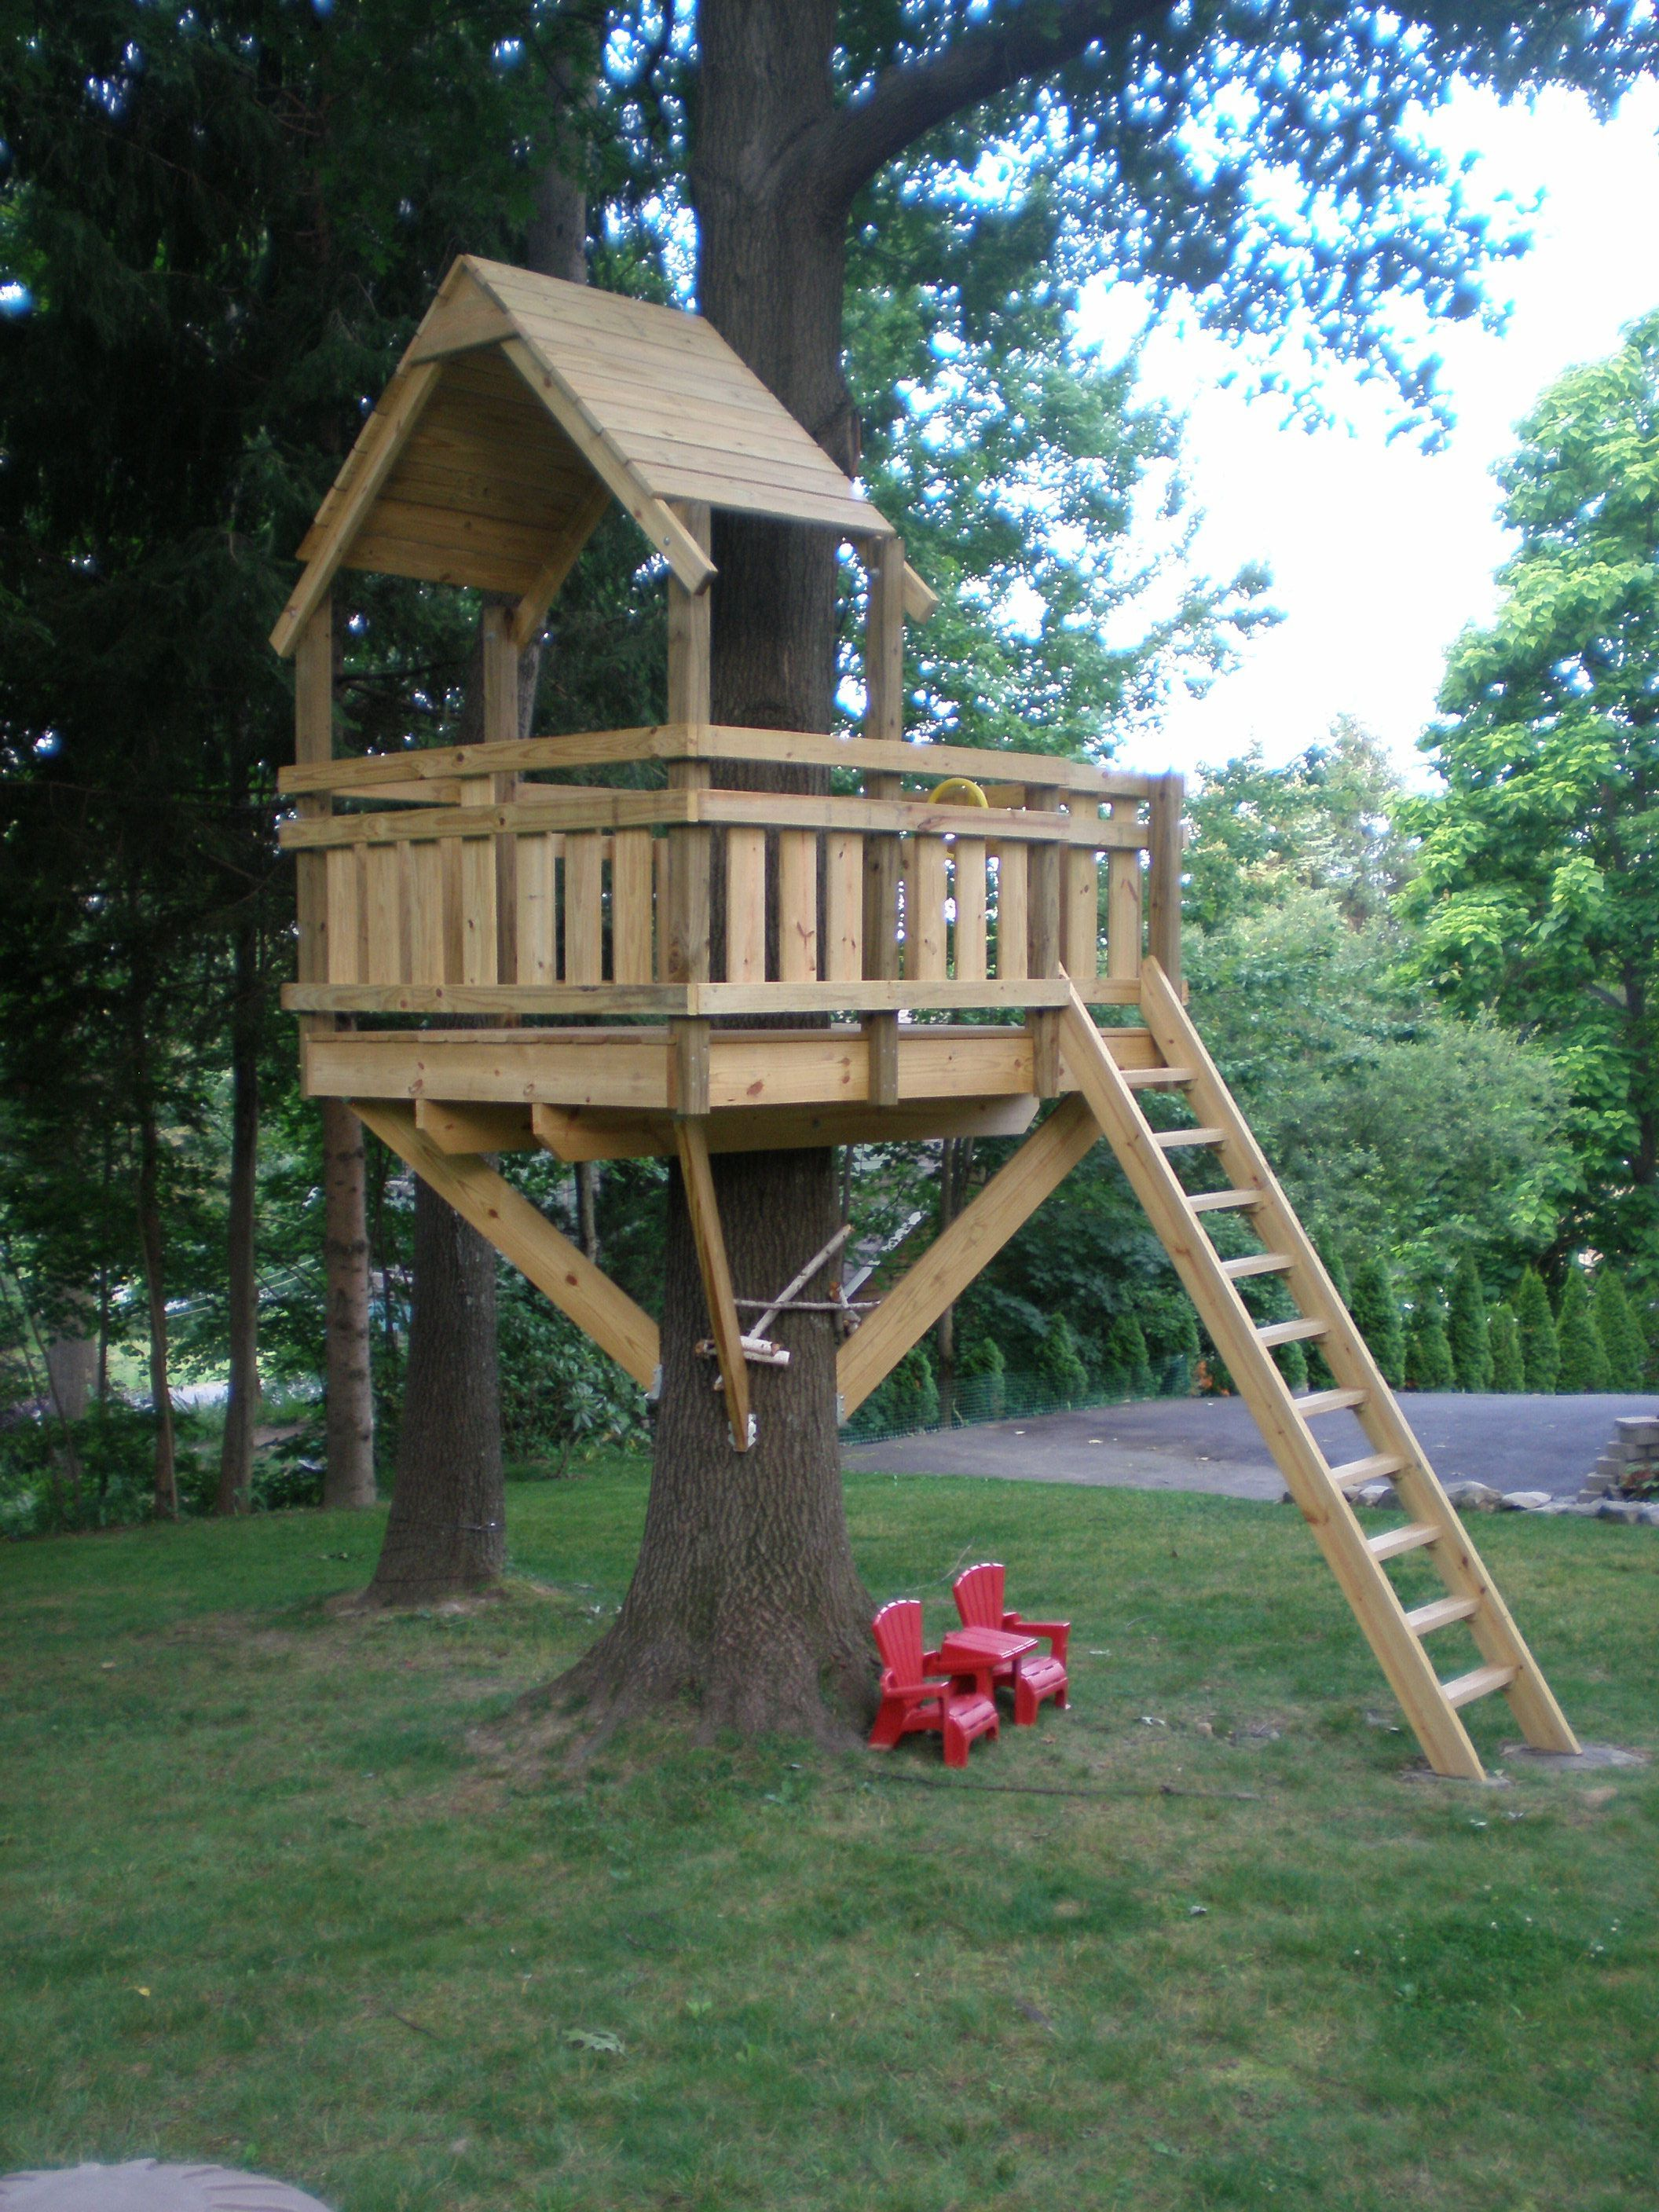 Outdoor Amazing Treehouse Ideas For Backyard Design Tree House Diy Simple Tree House Tree House Kids Treehouse ideas for backyard